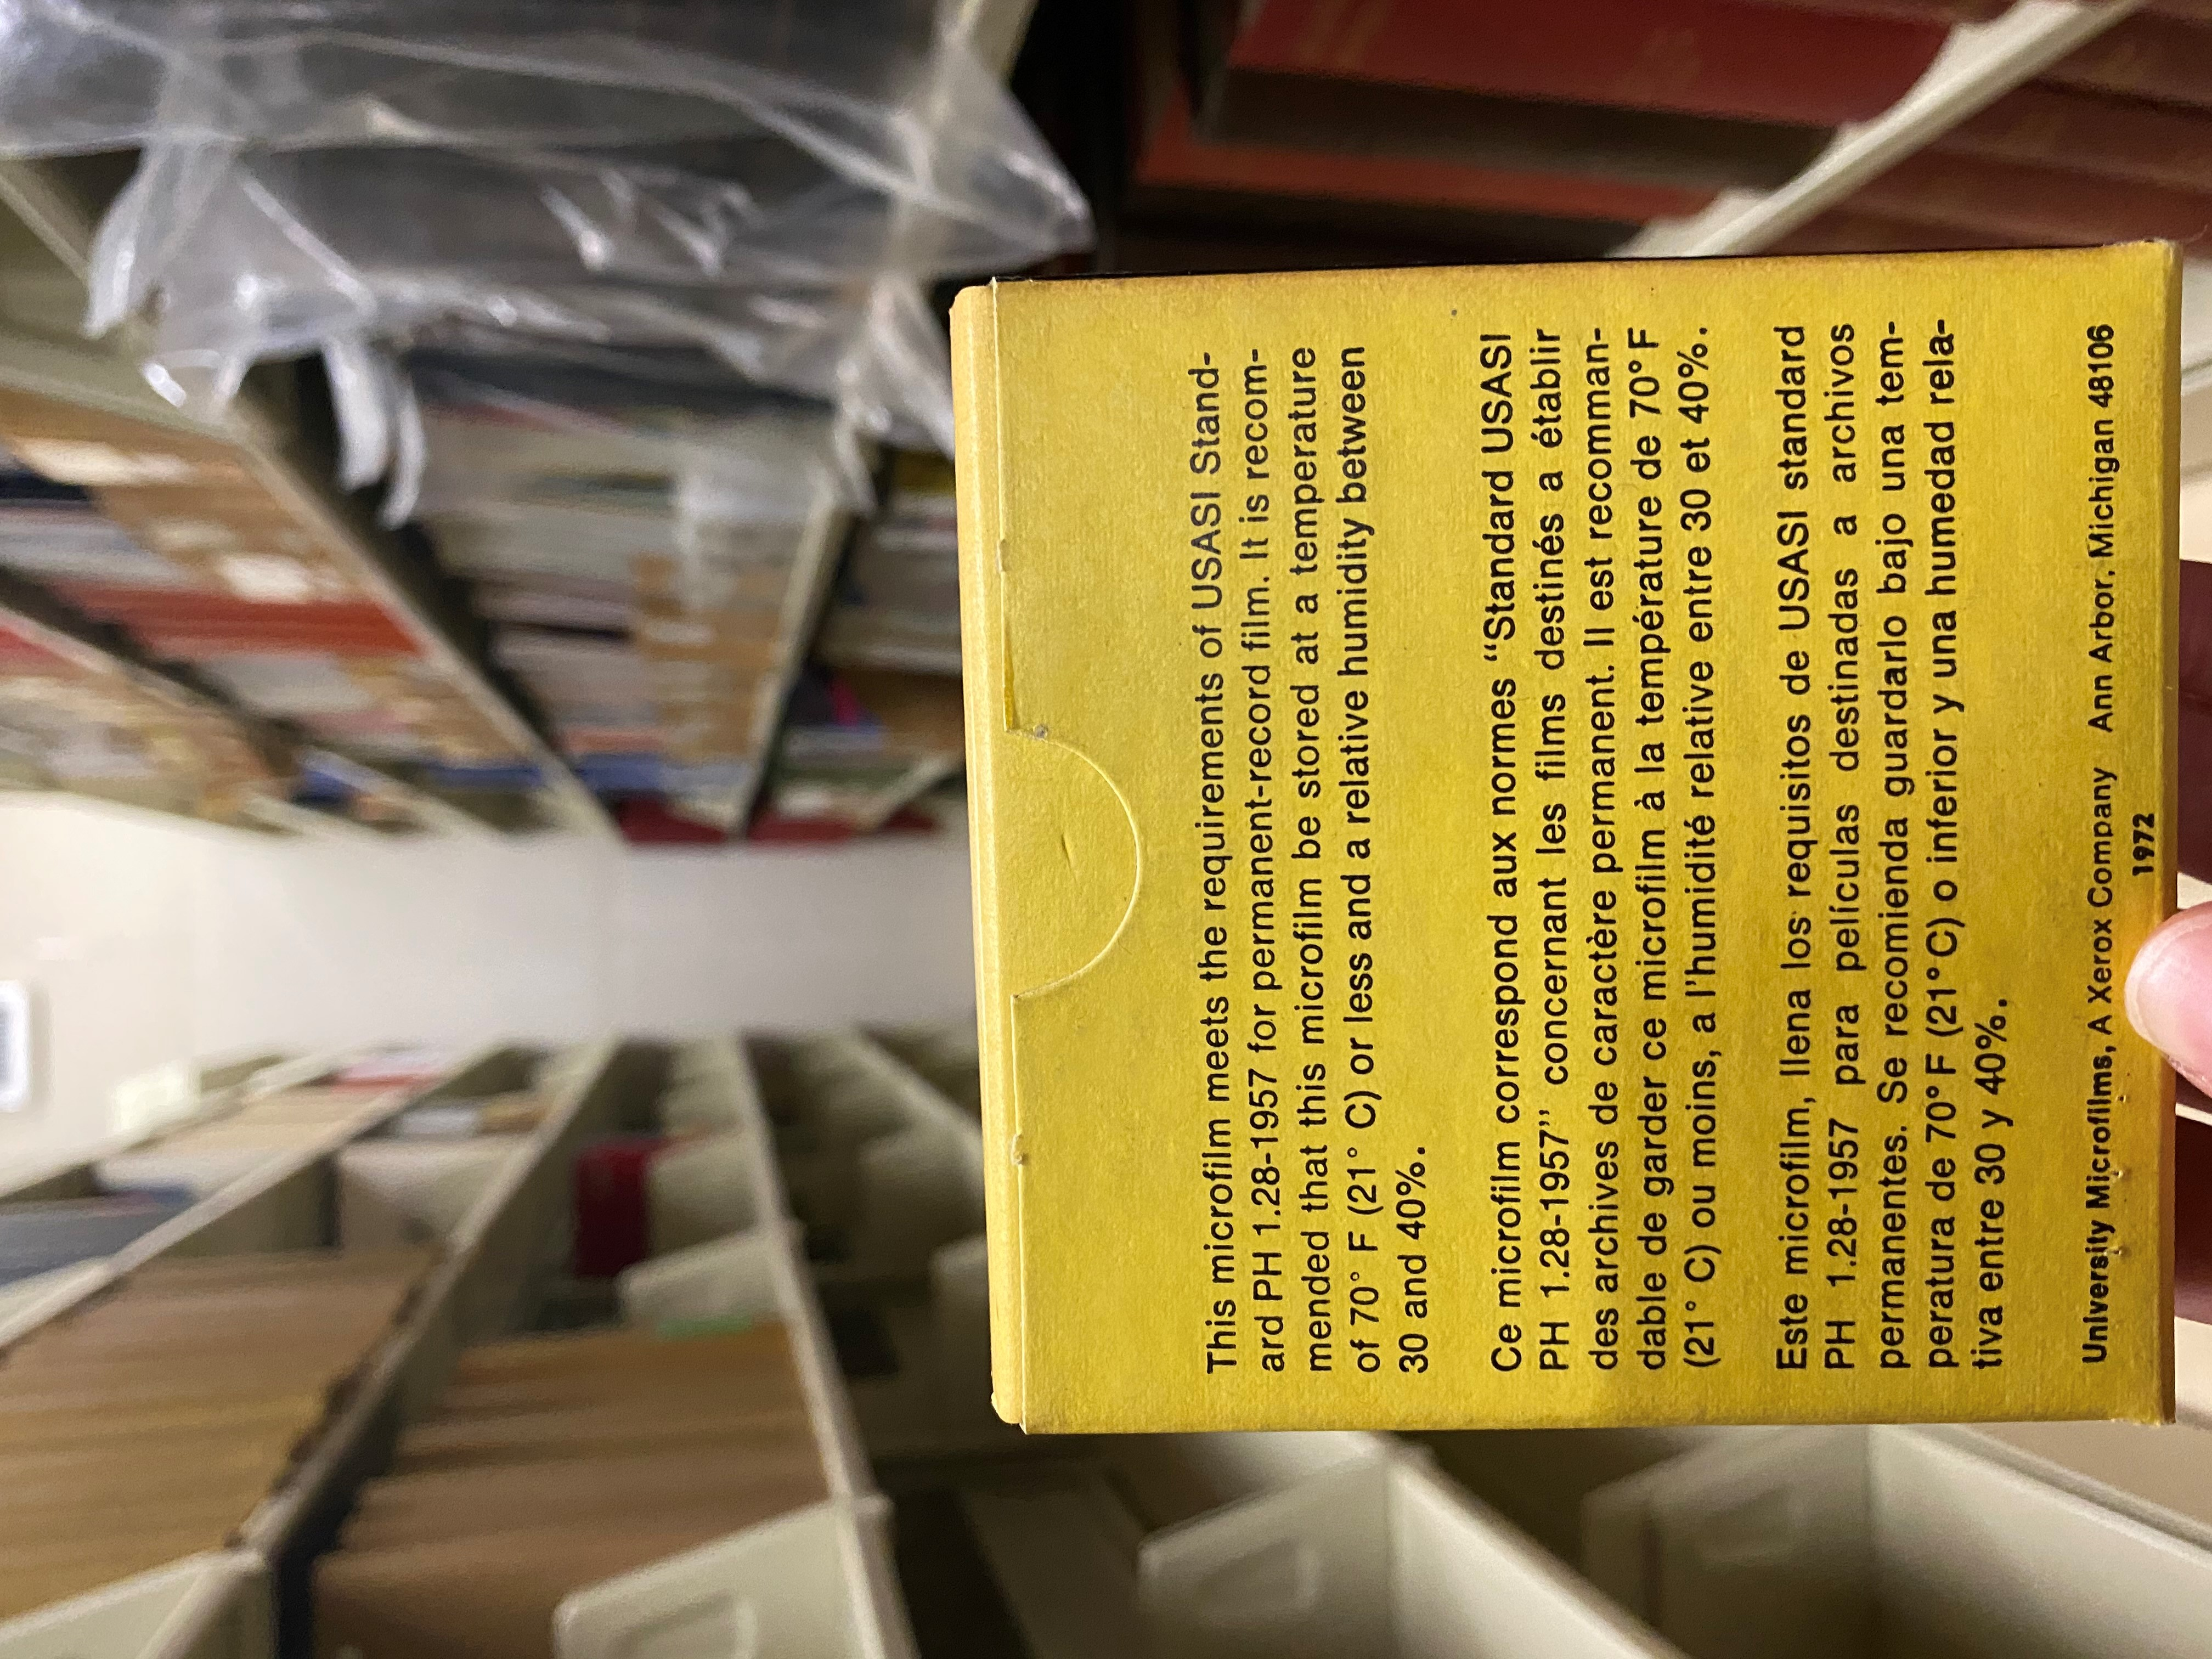 the back of a box of microfilm